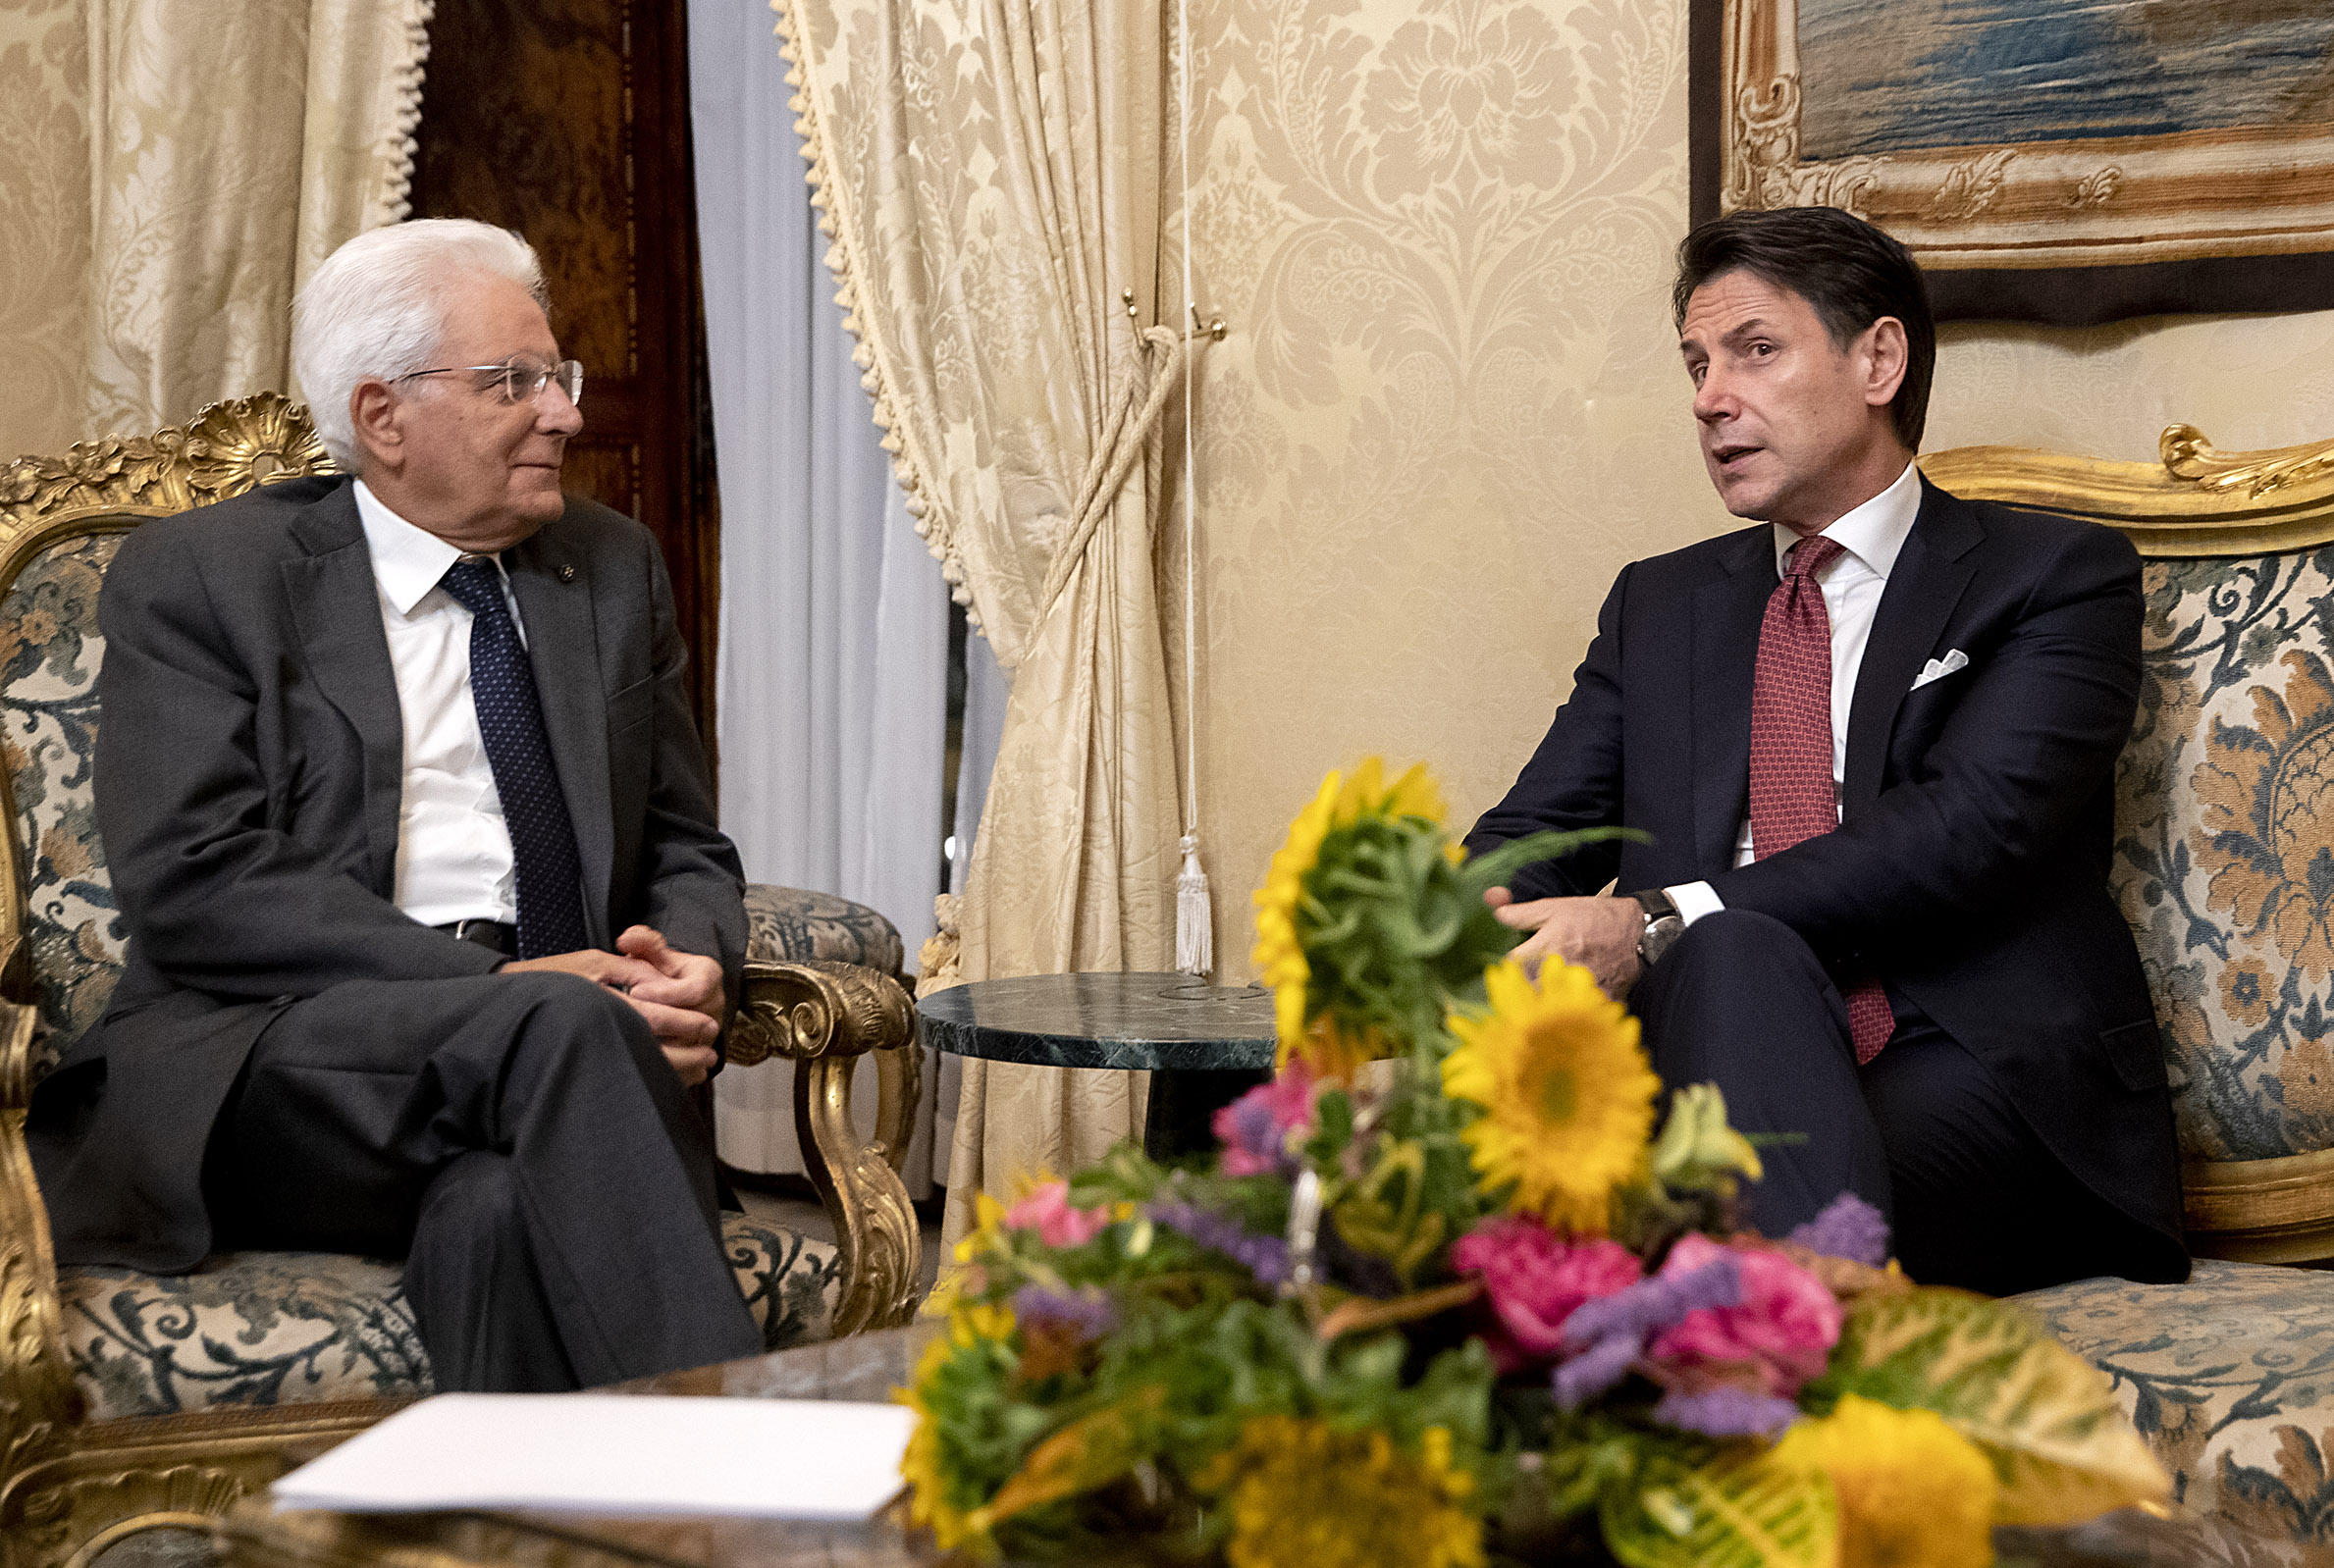 Outgoing Prime Minister Giuseppe Conte (right) tenders his resignation during a meeting with Italy's President Sergio Mattarella this past Tuesday in Rome. (Photo credit: Presidenza della Repubblica)